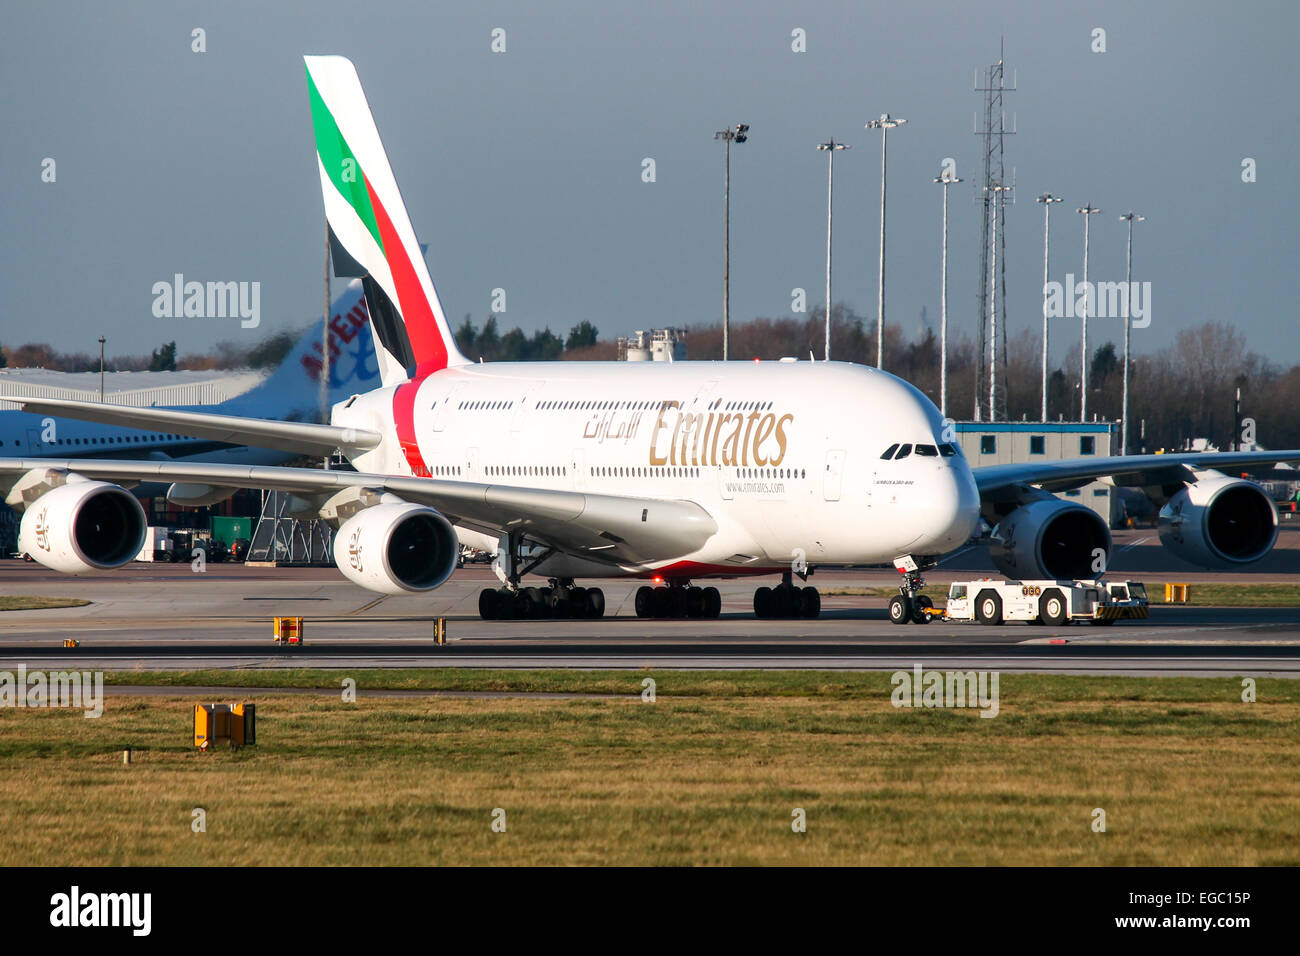 Emirates Airbus A380-800 pushes back from terminal 1 at Manchester airport. - Stock Image